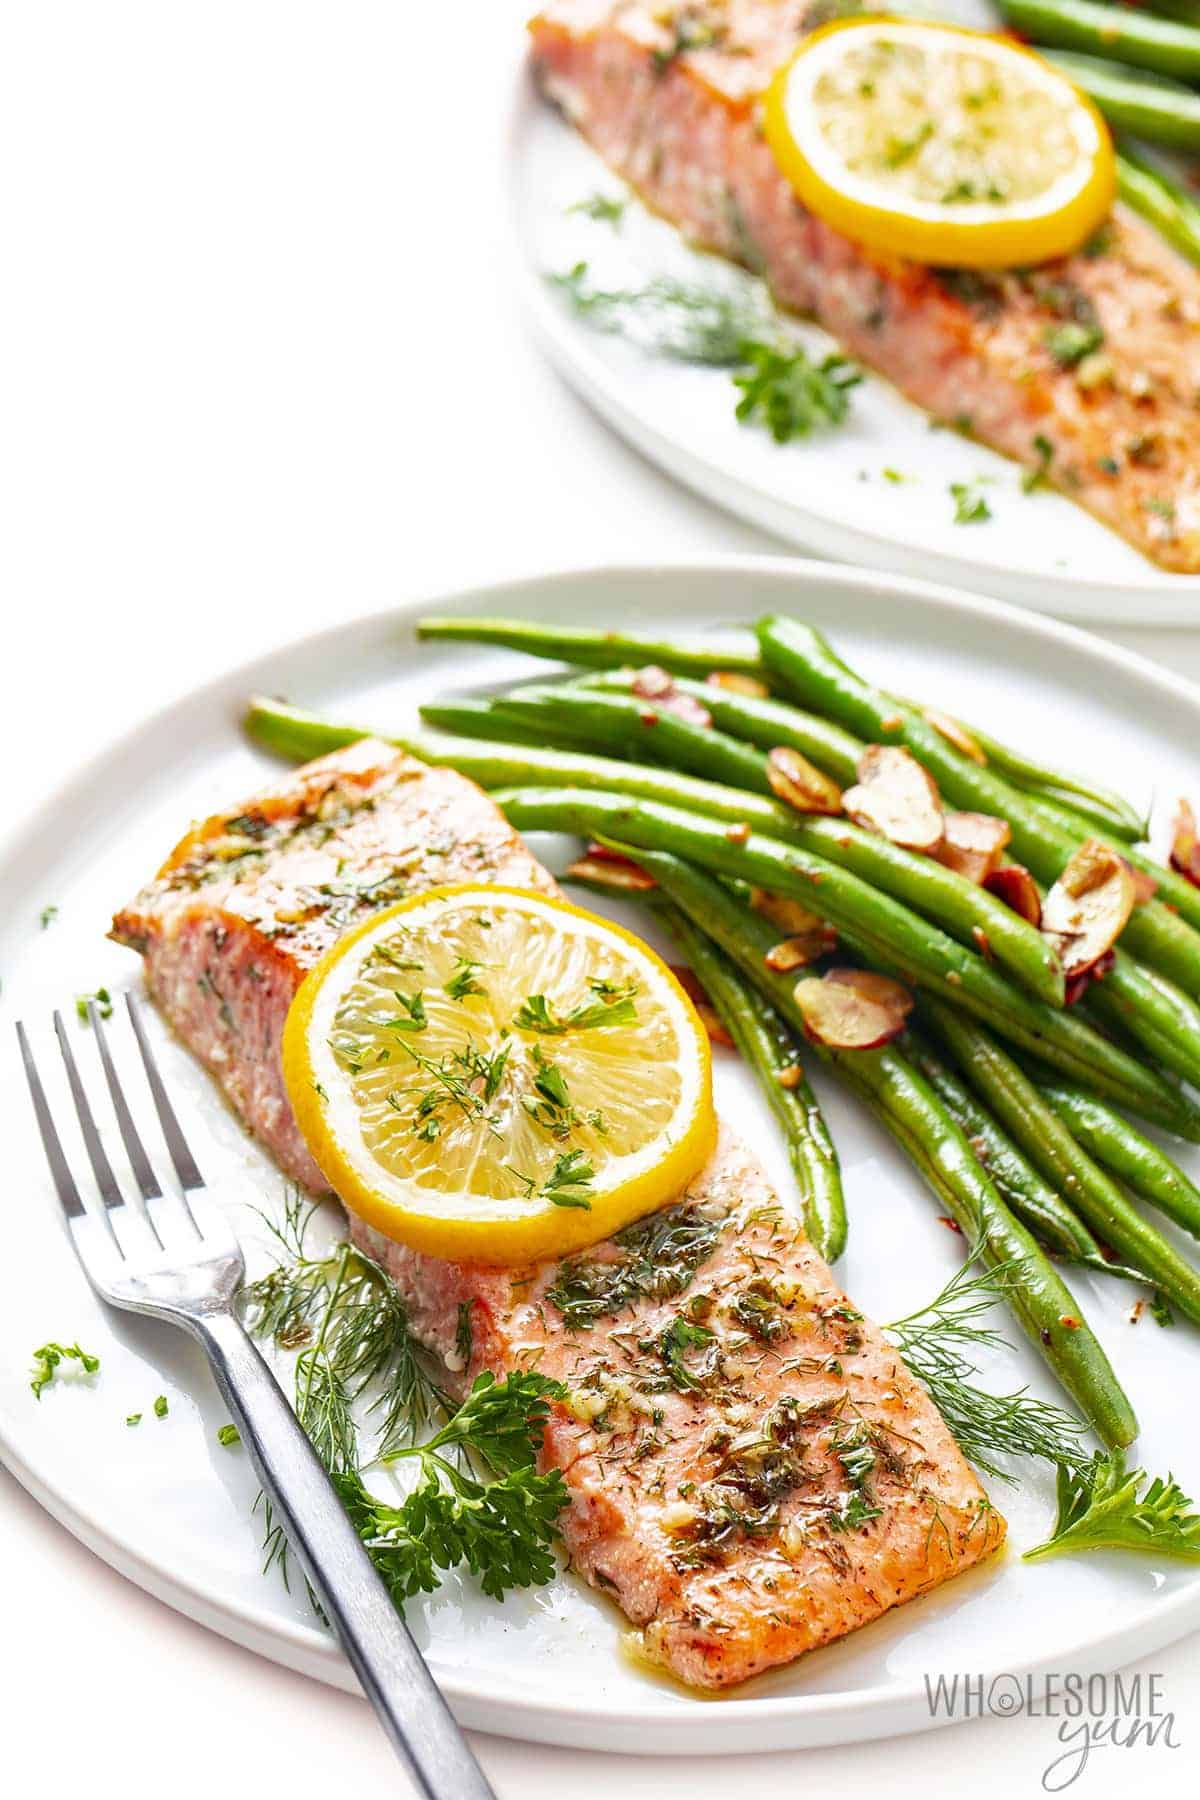 Oven baked salmon with green beans on plates